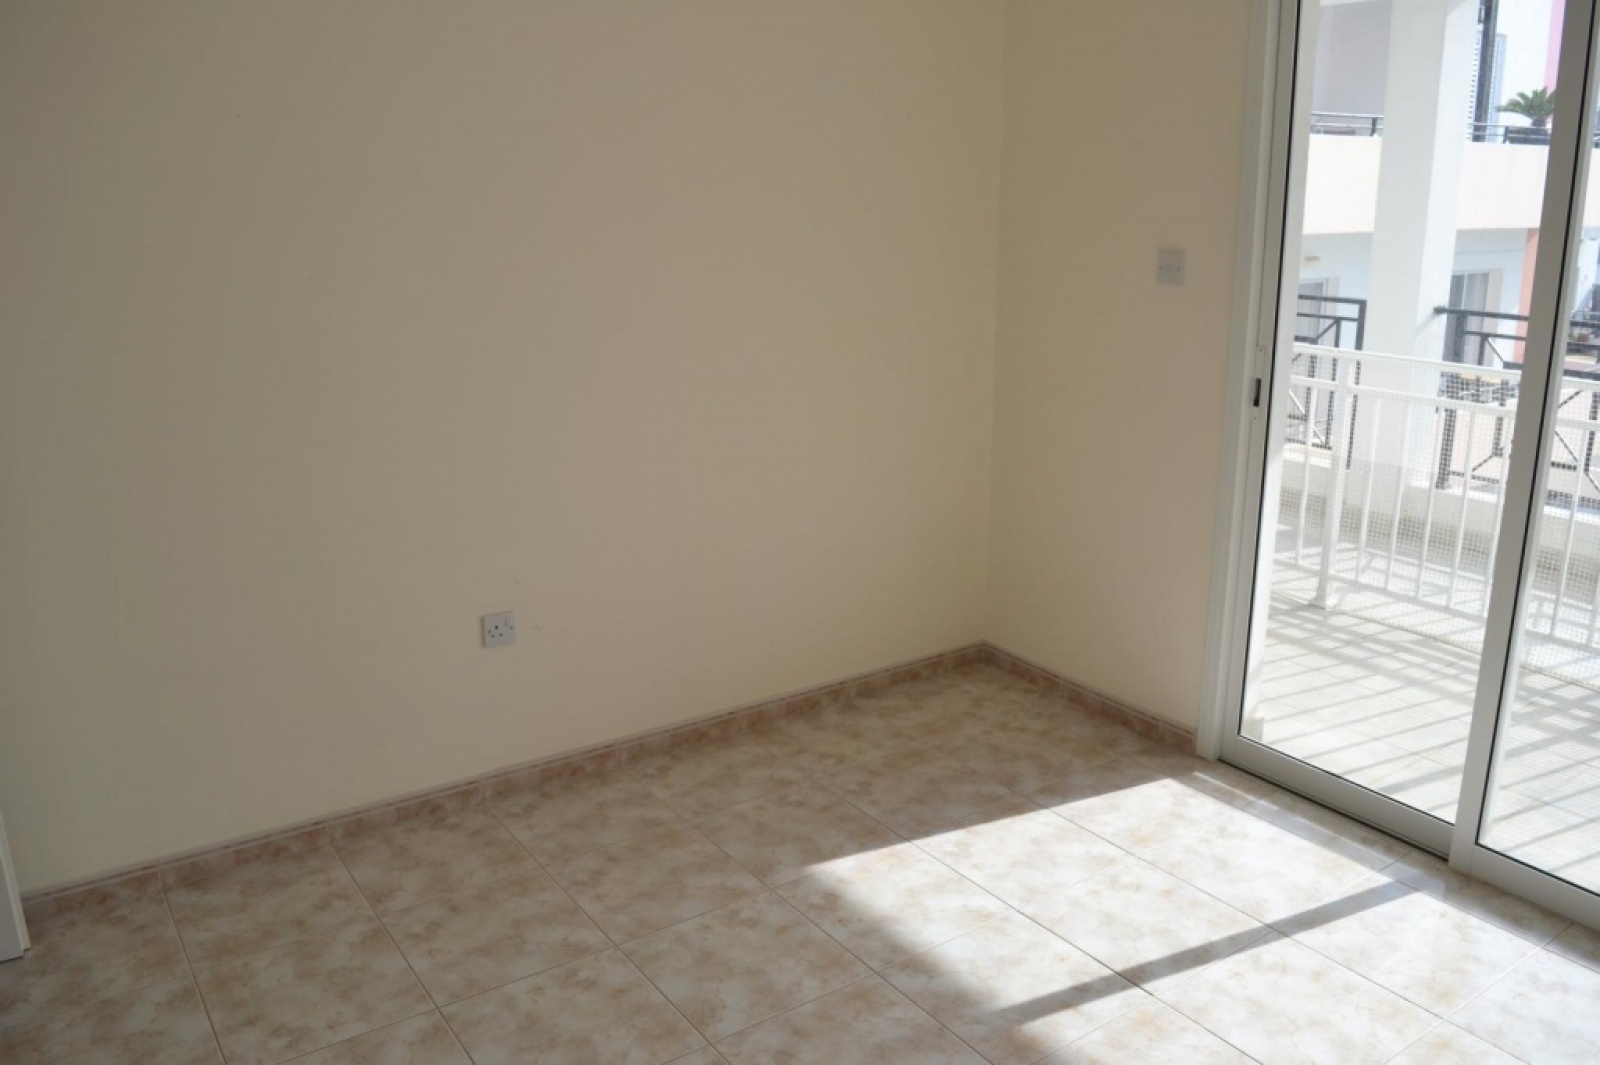 Residential Apartment - Venus Gardens Phase 2 - No.105